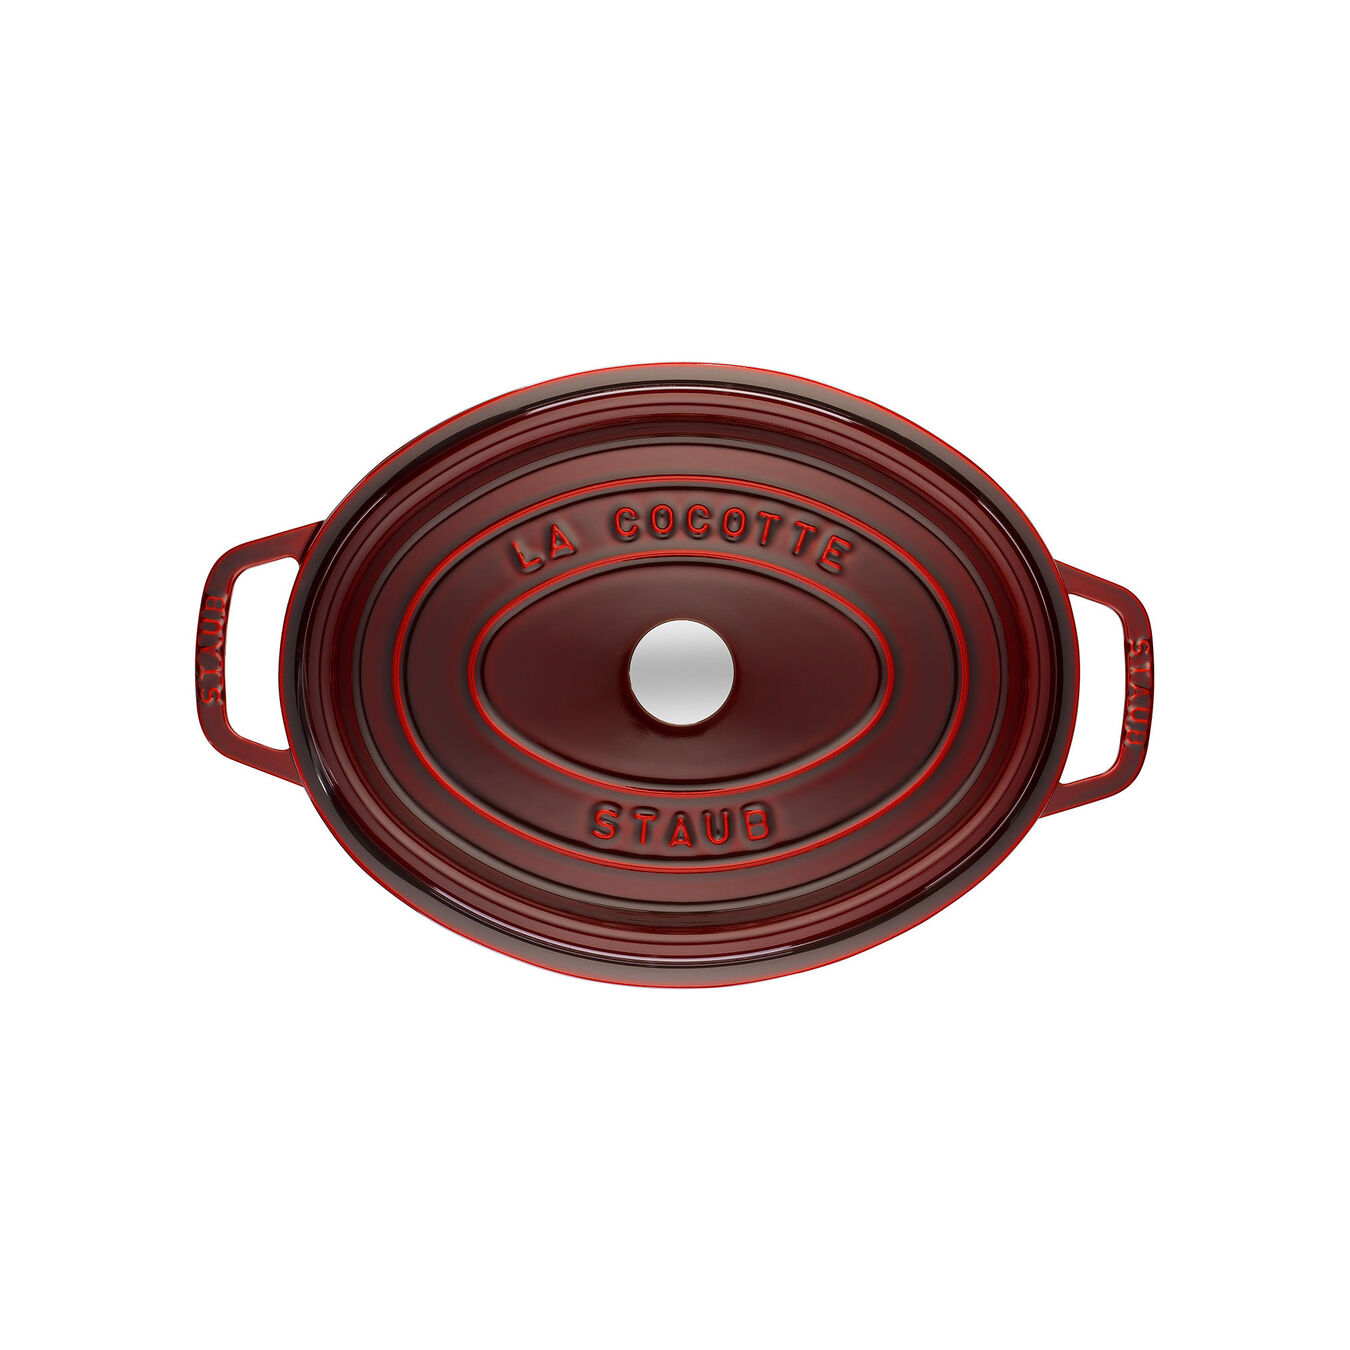 4.25 l Cast iron oval Cocotte, Grenadine-Red,,large 2